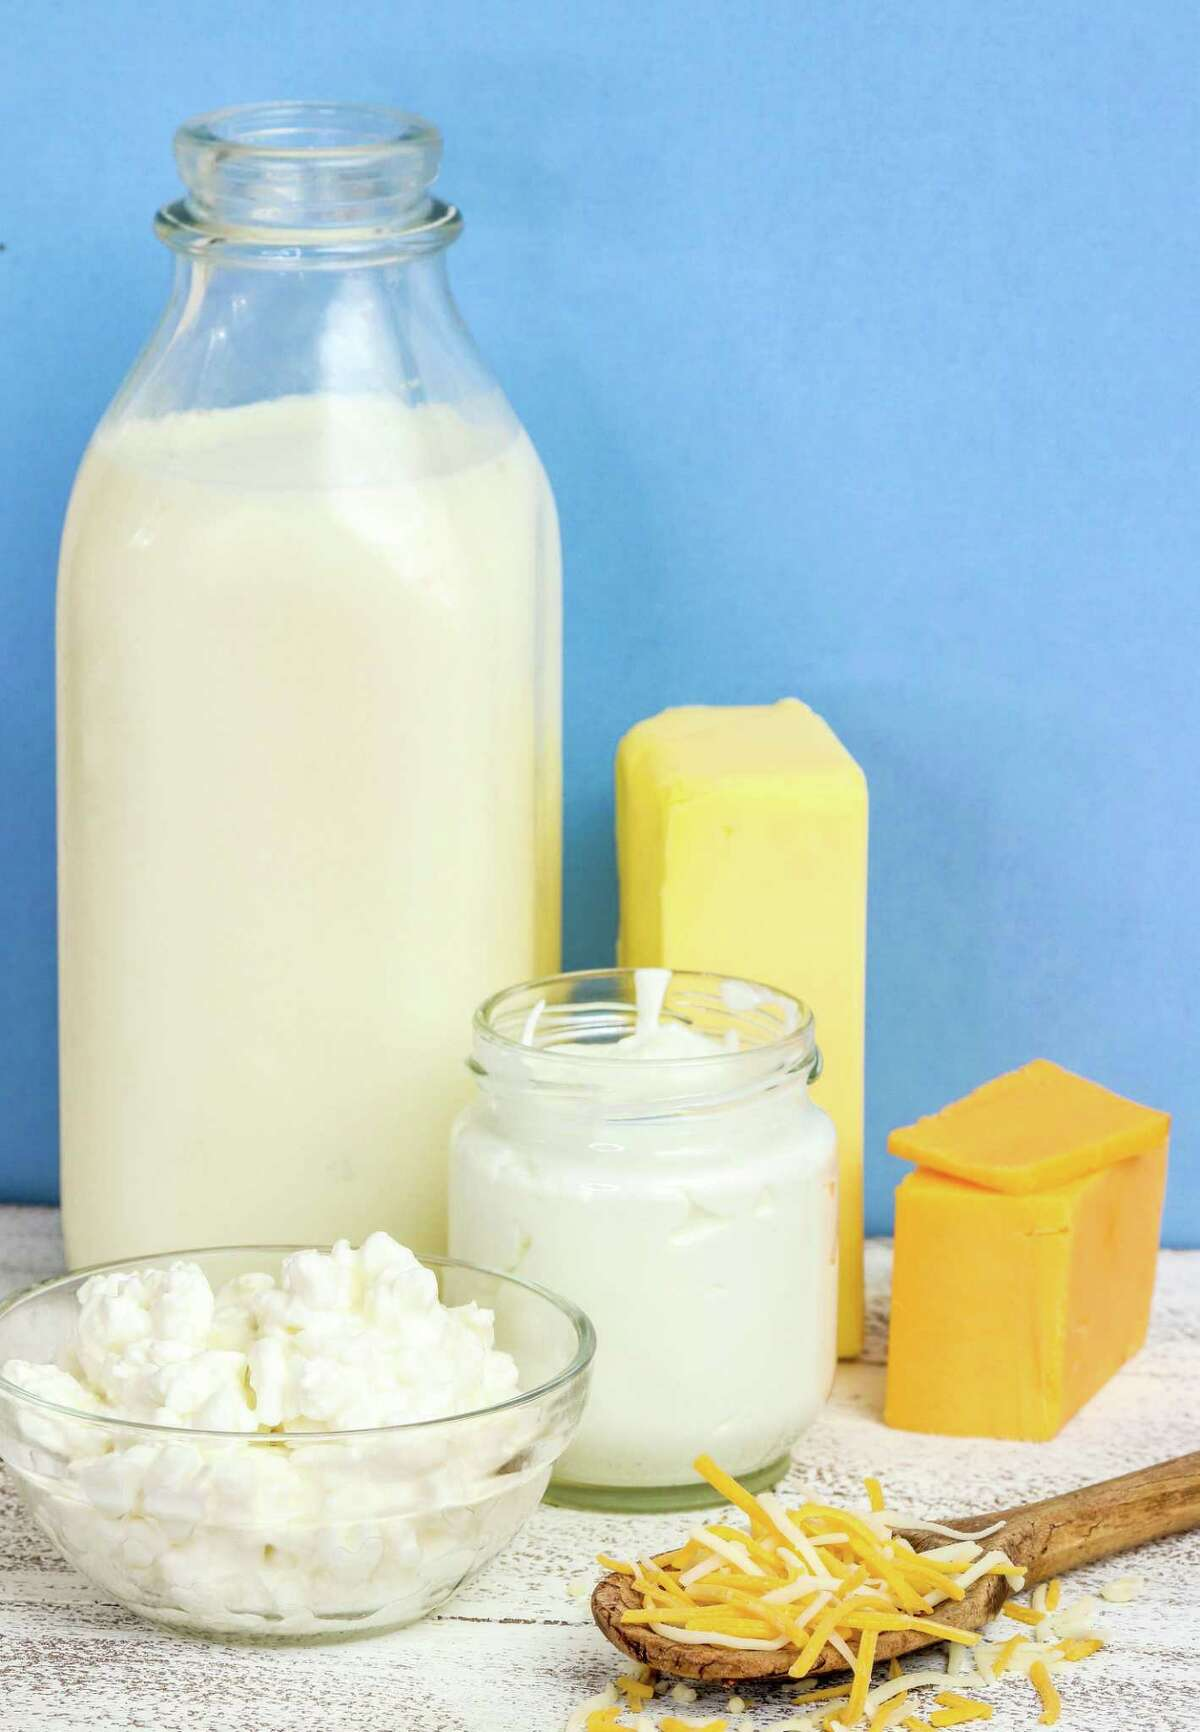 June is National Dairy Month.